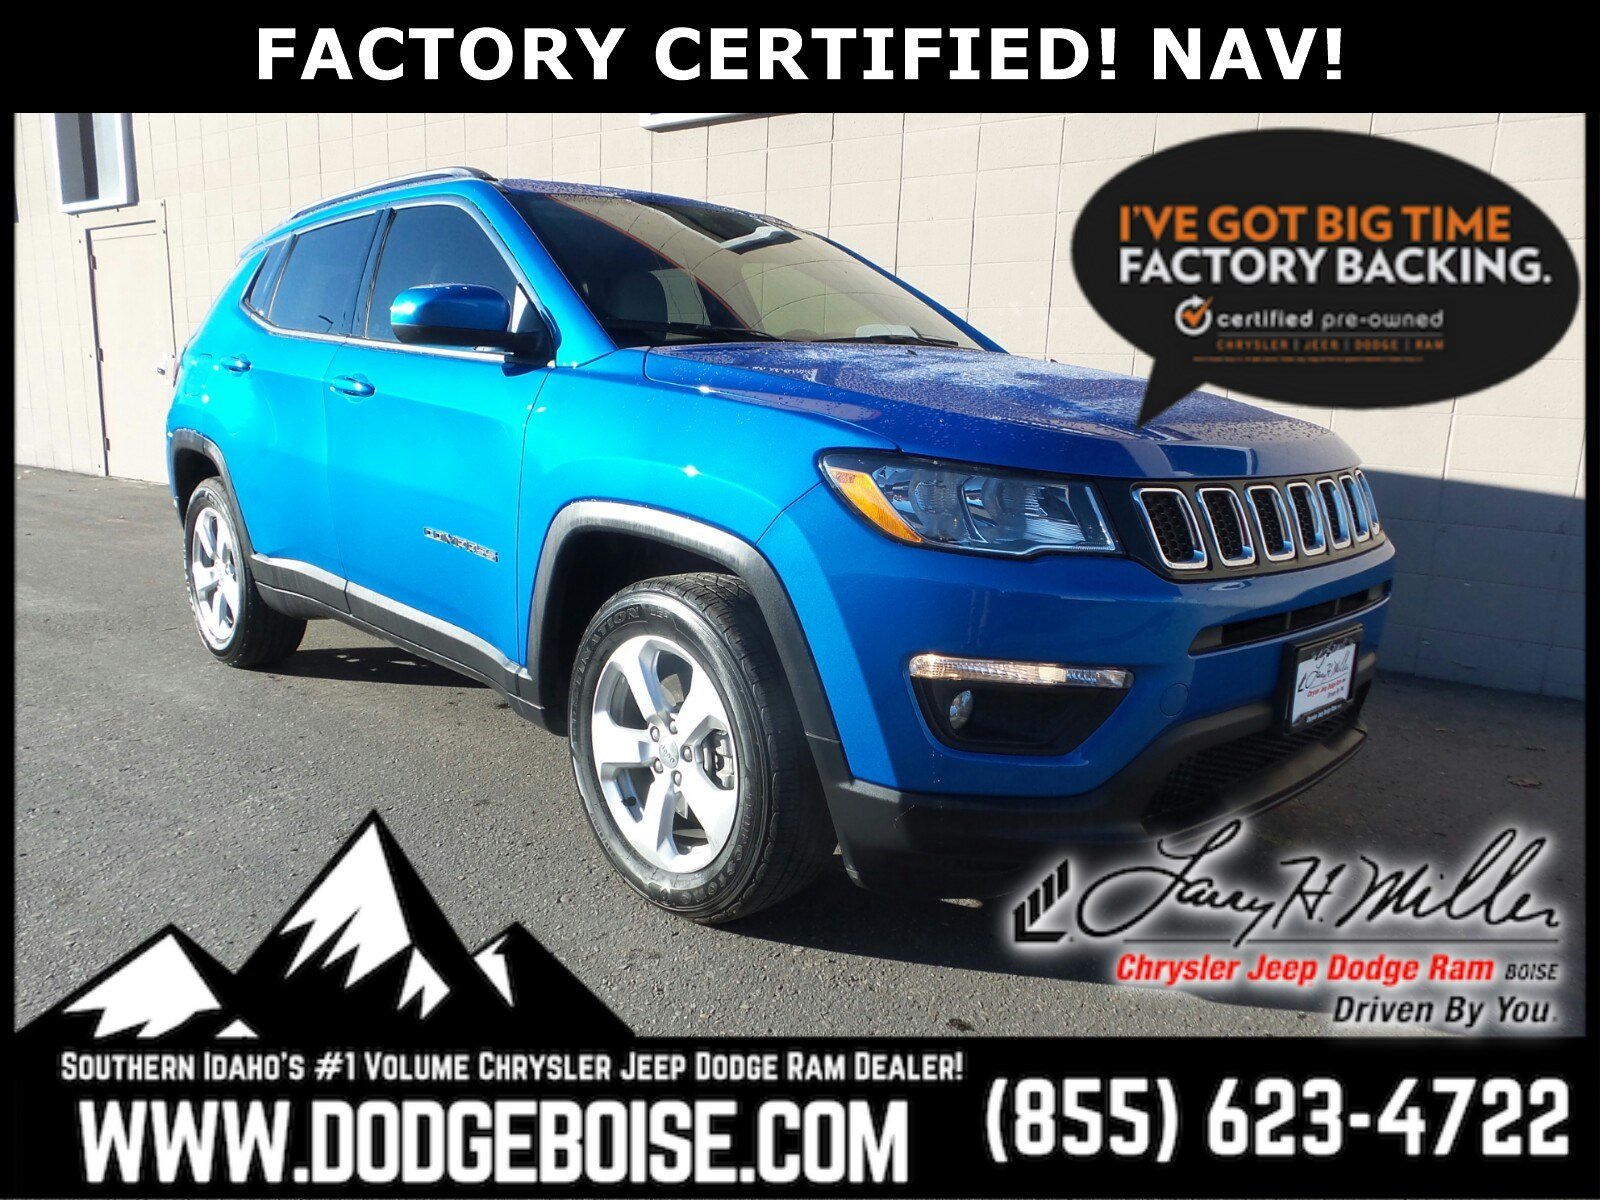 2017 Jeep New Compass Latitude FACTORY CERTIFIED! NAV! SUV